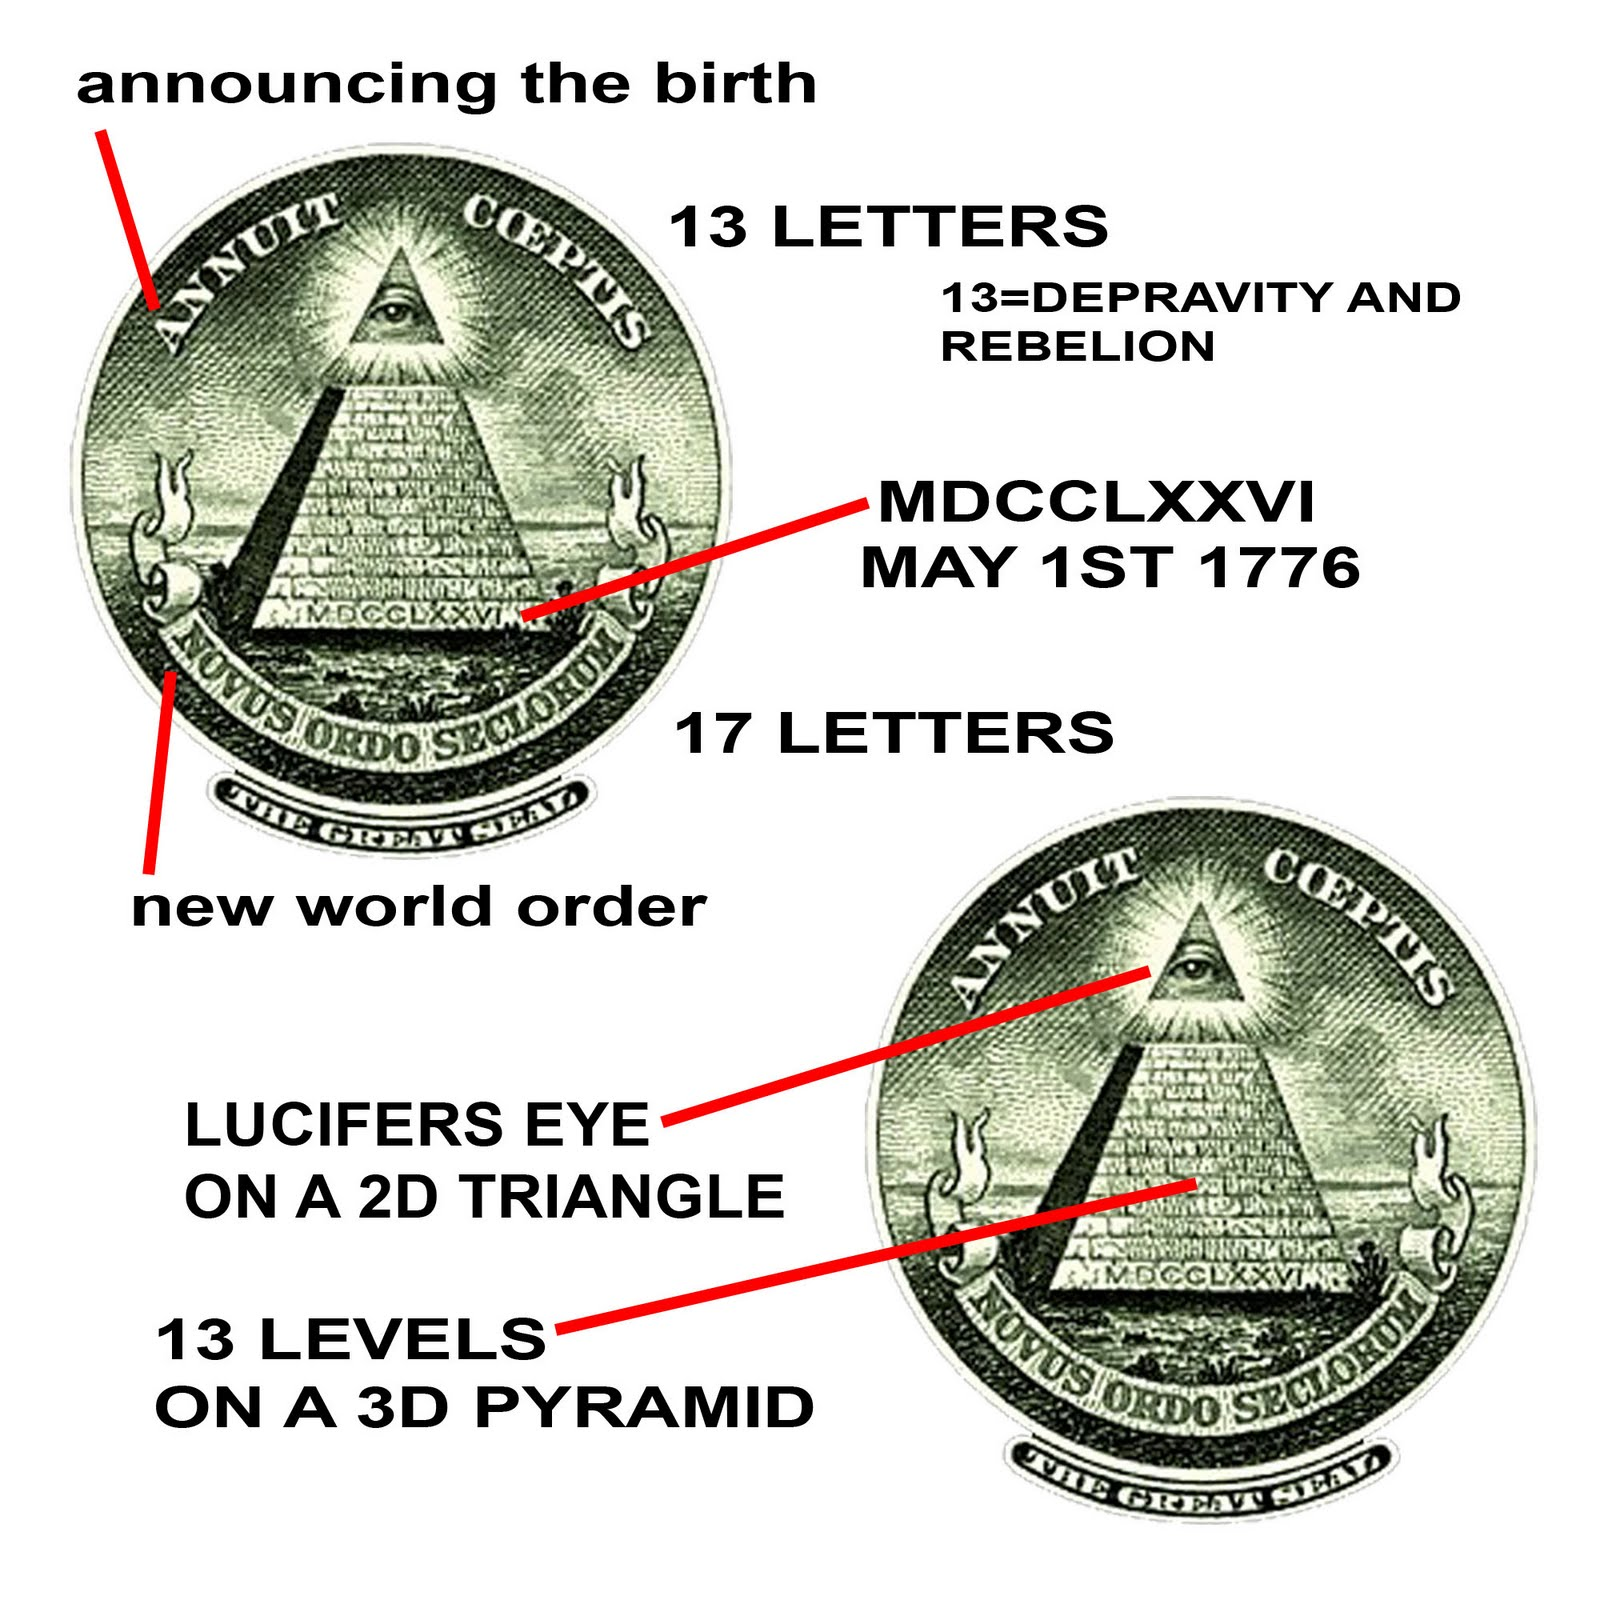 hidden meaning symbolism of the dollar 666 mark of beast ... - photo#11